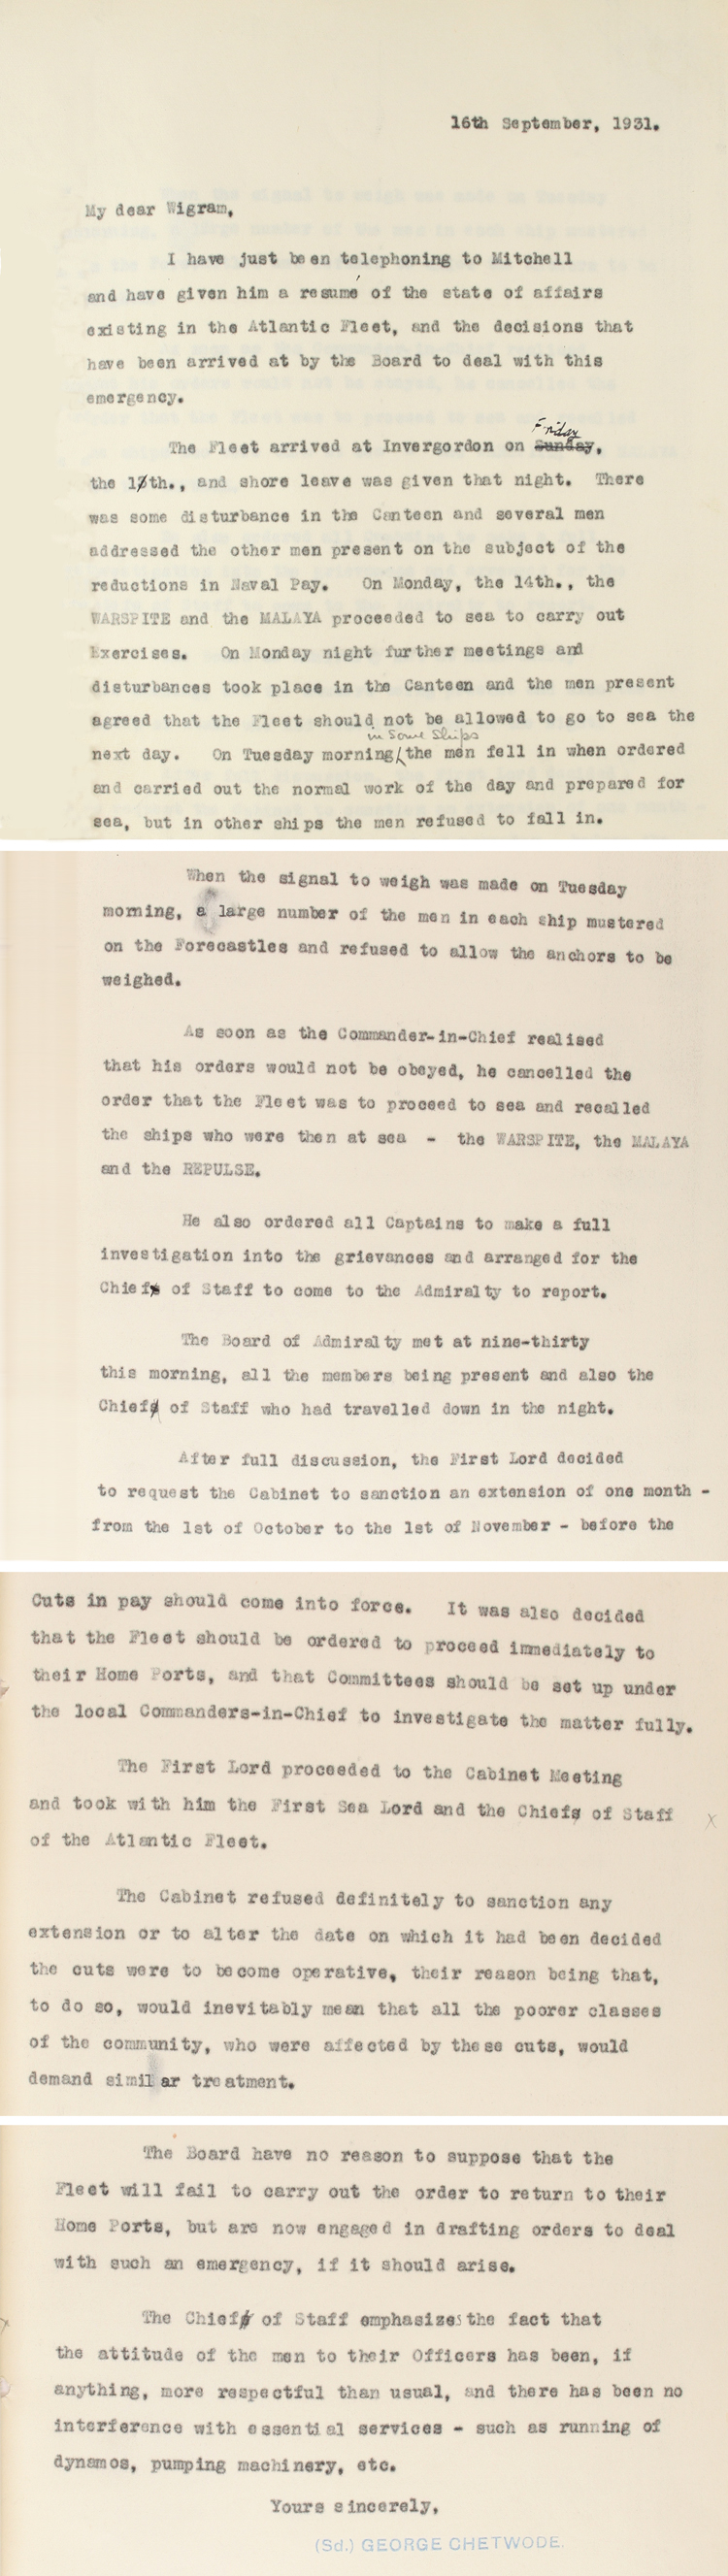 Extracts from a letter to Sir Clive Wigram, Private Secretary to the King from Sir George Chetwode, the Naval Secretary, 16th September 1931 (ADM 178/129)